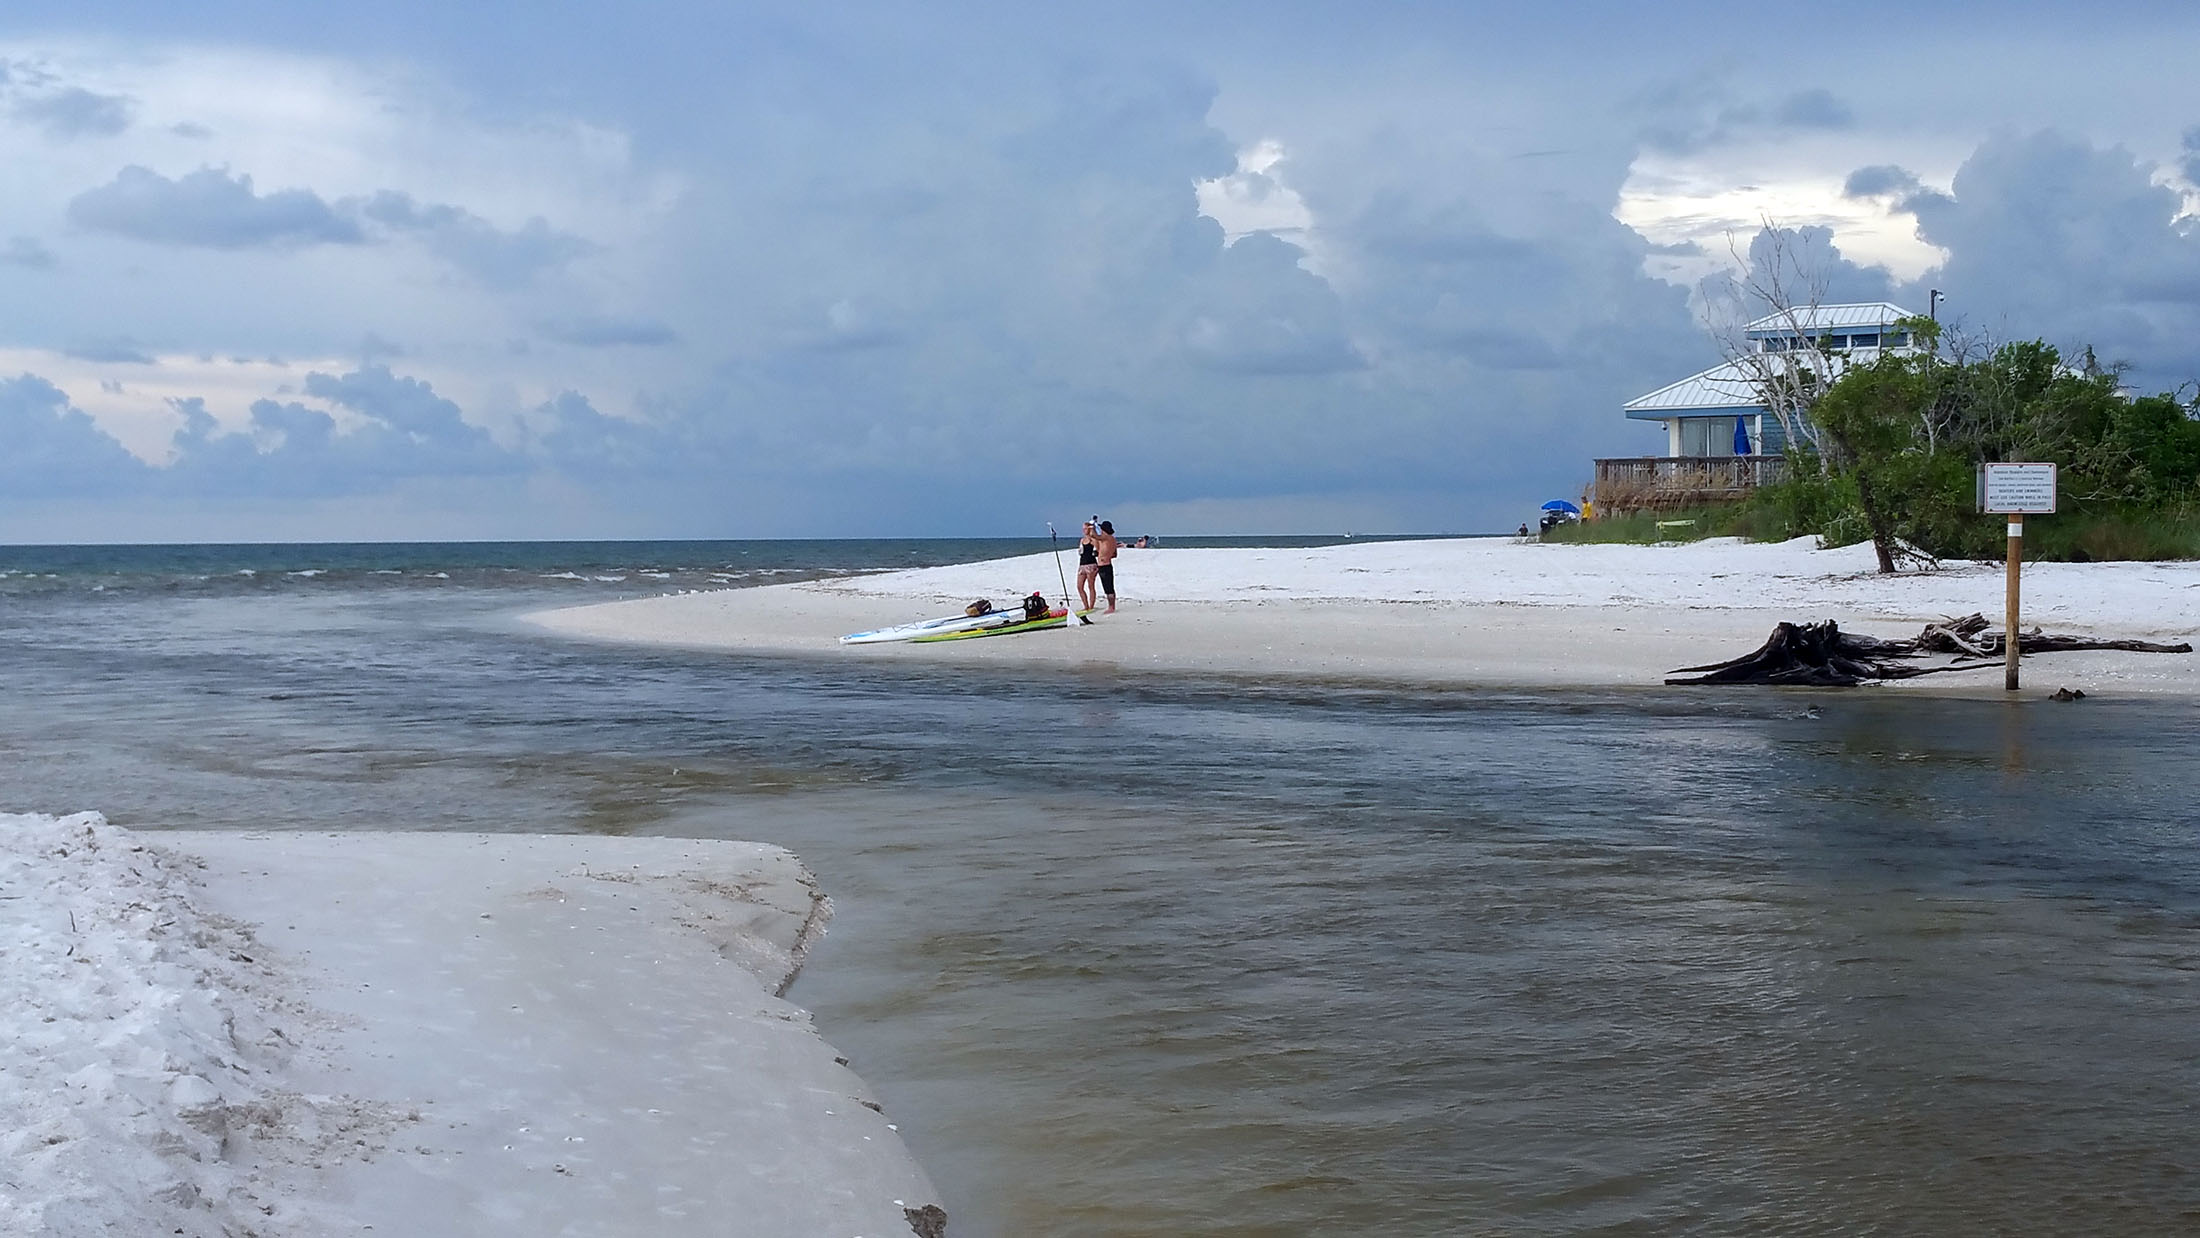 Clam Pass Beach, where one can float with the tide through a narrow inlet, is an appealing alternative to the beaches on Sanibel Island. (Craig Davis/Craigslegztravels.com)